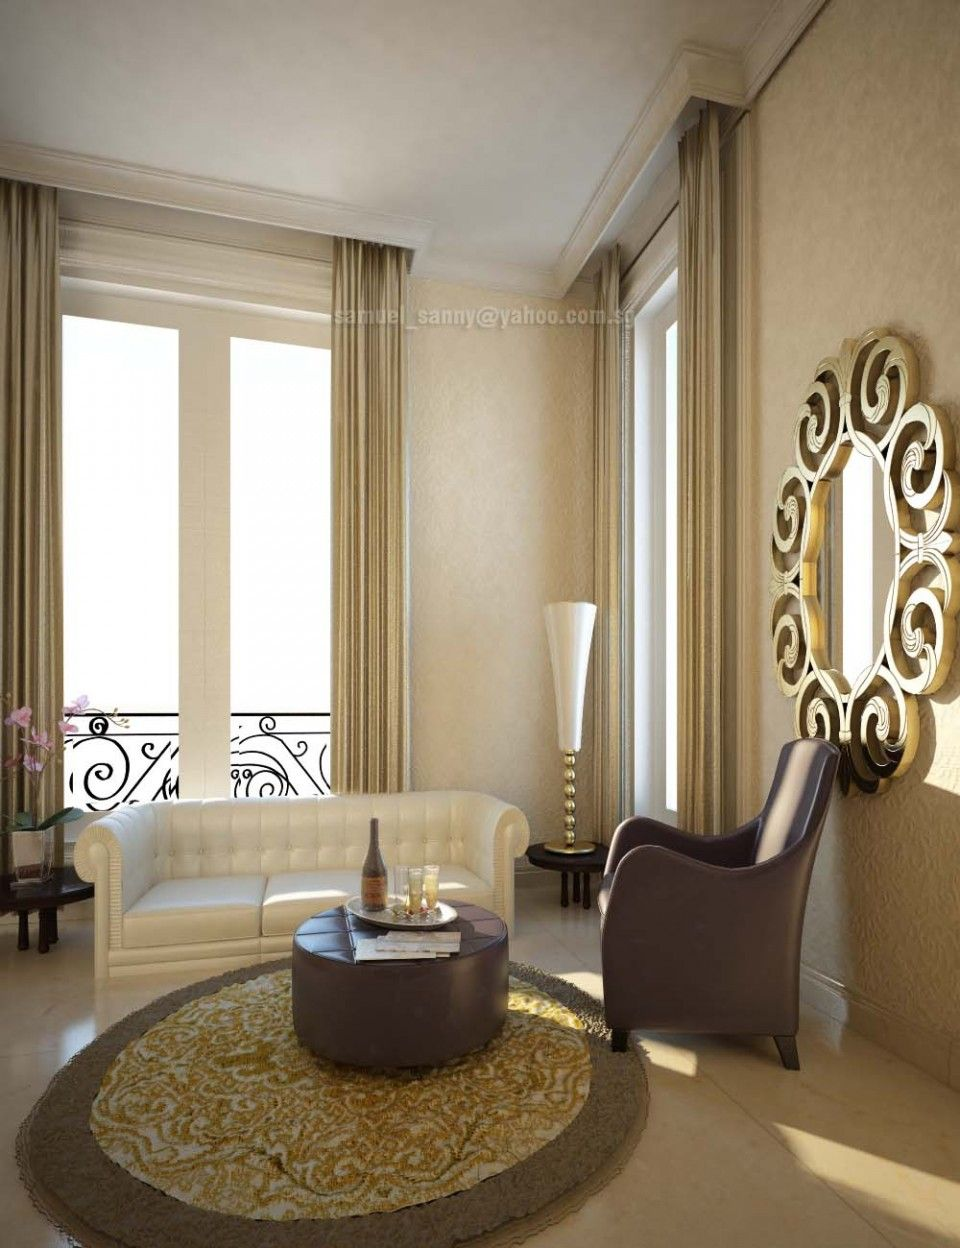 Brown curtain ideas near floor lamp with table in the corner also